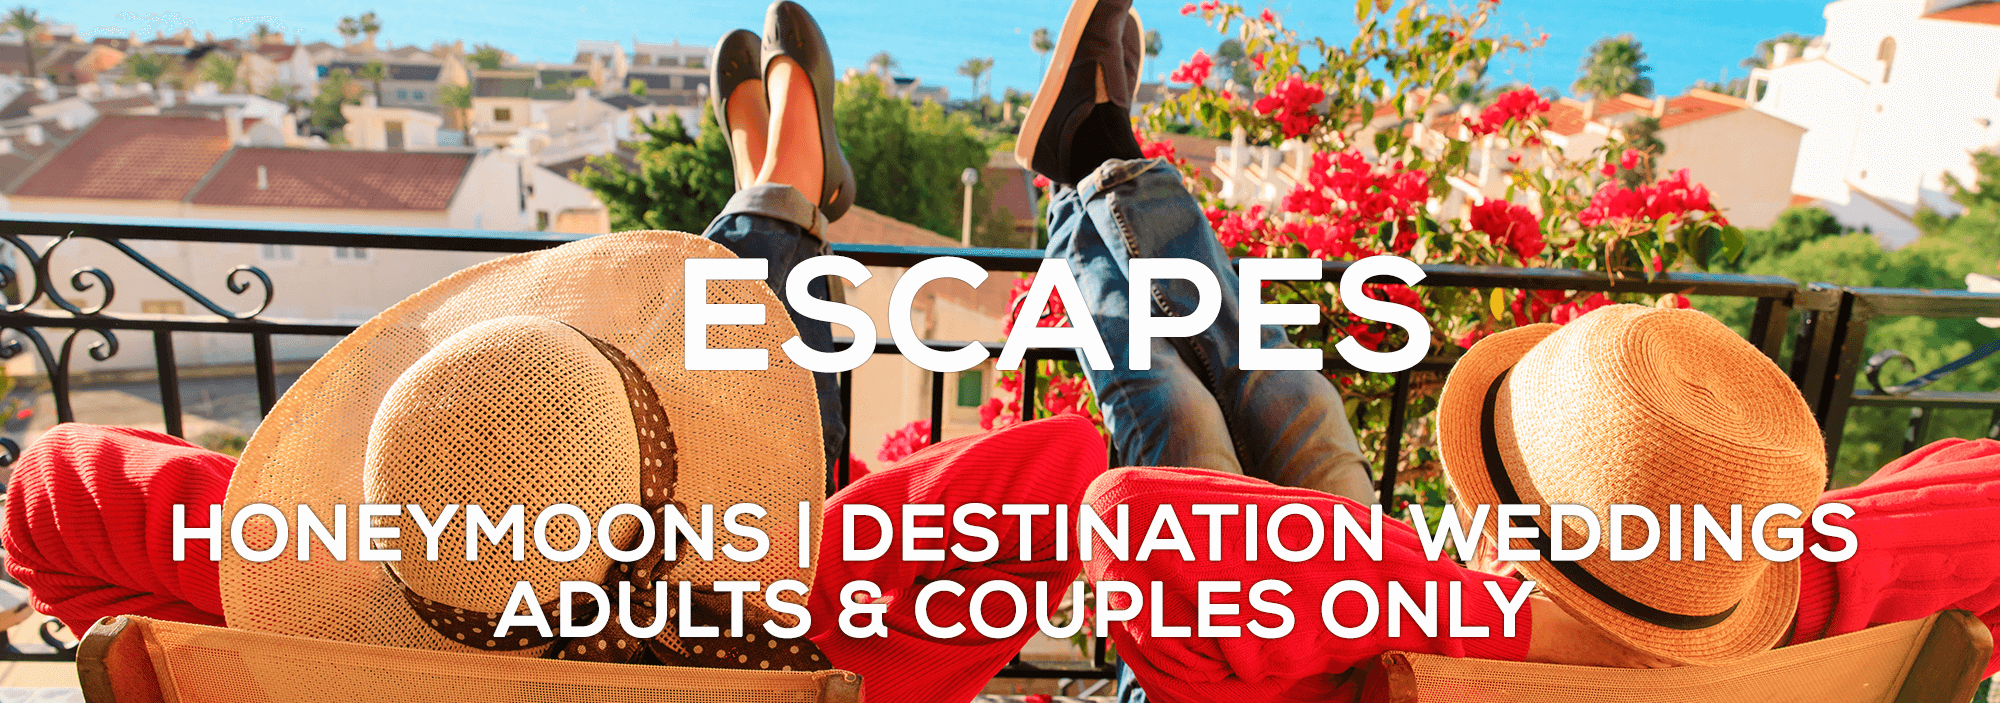 Escapes-Image